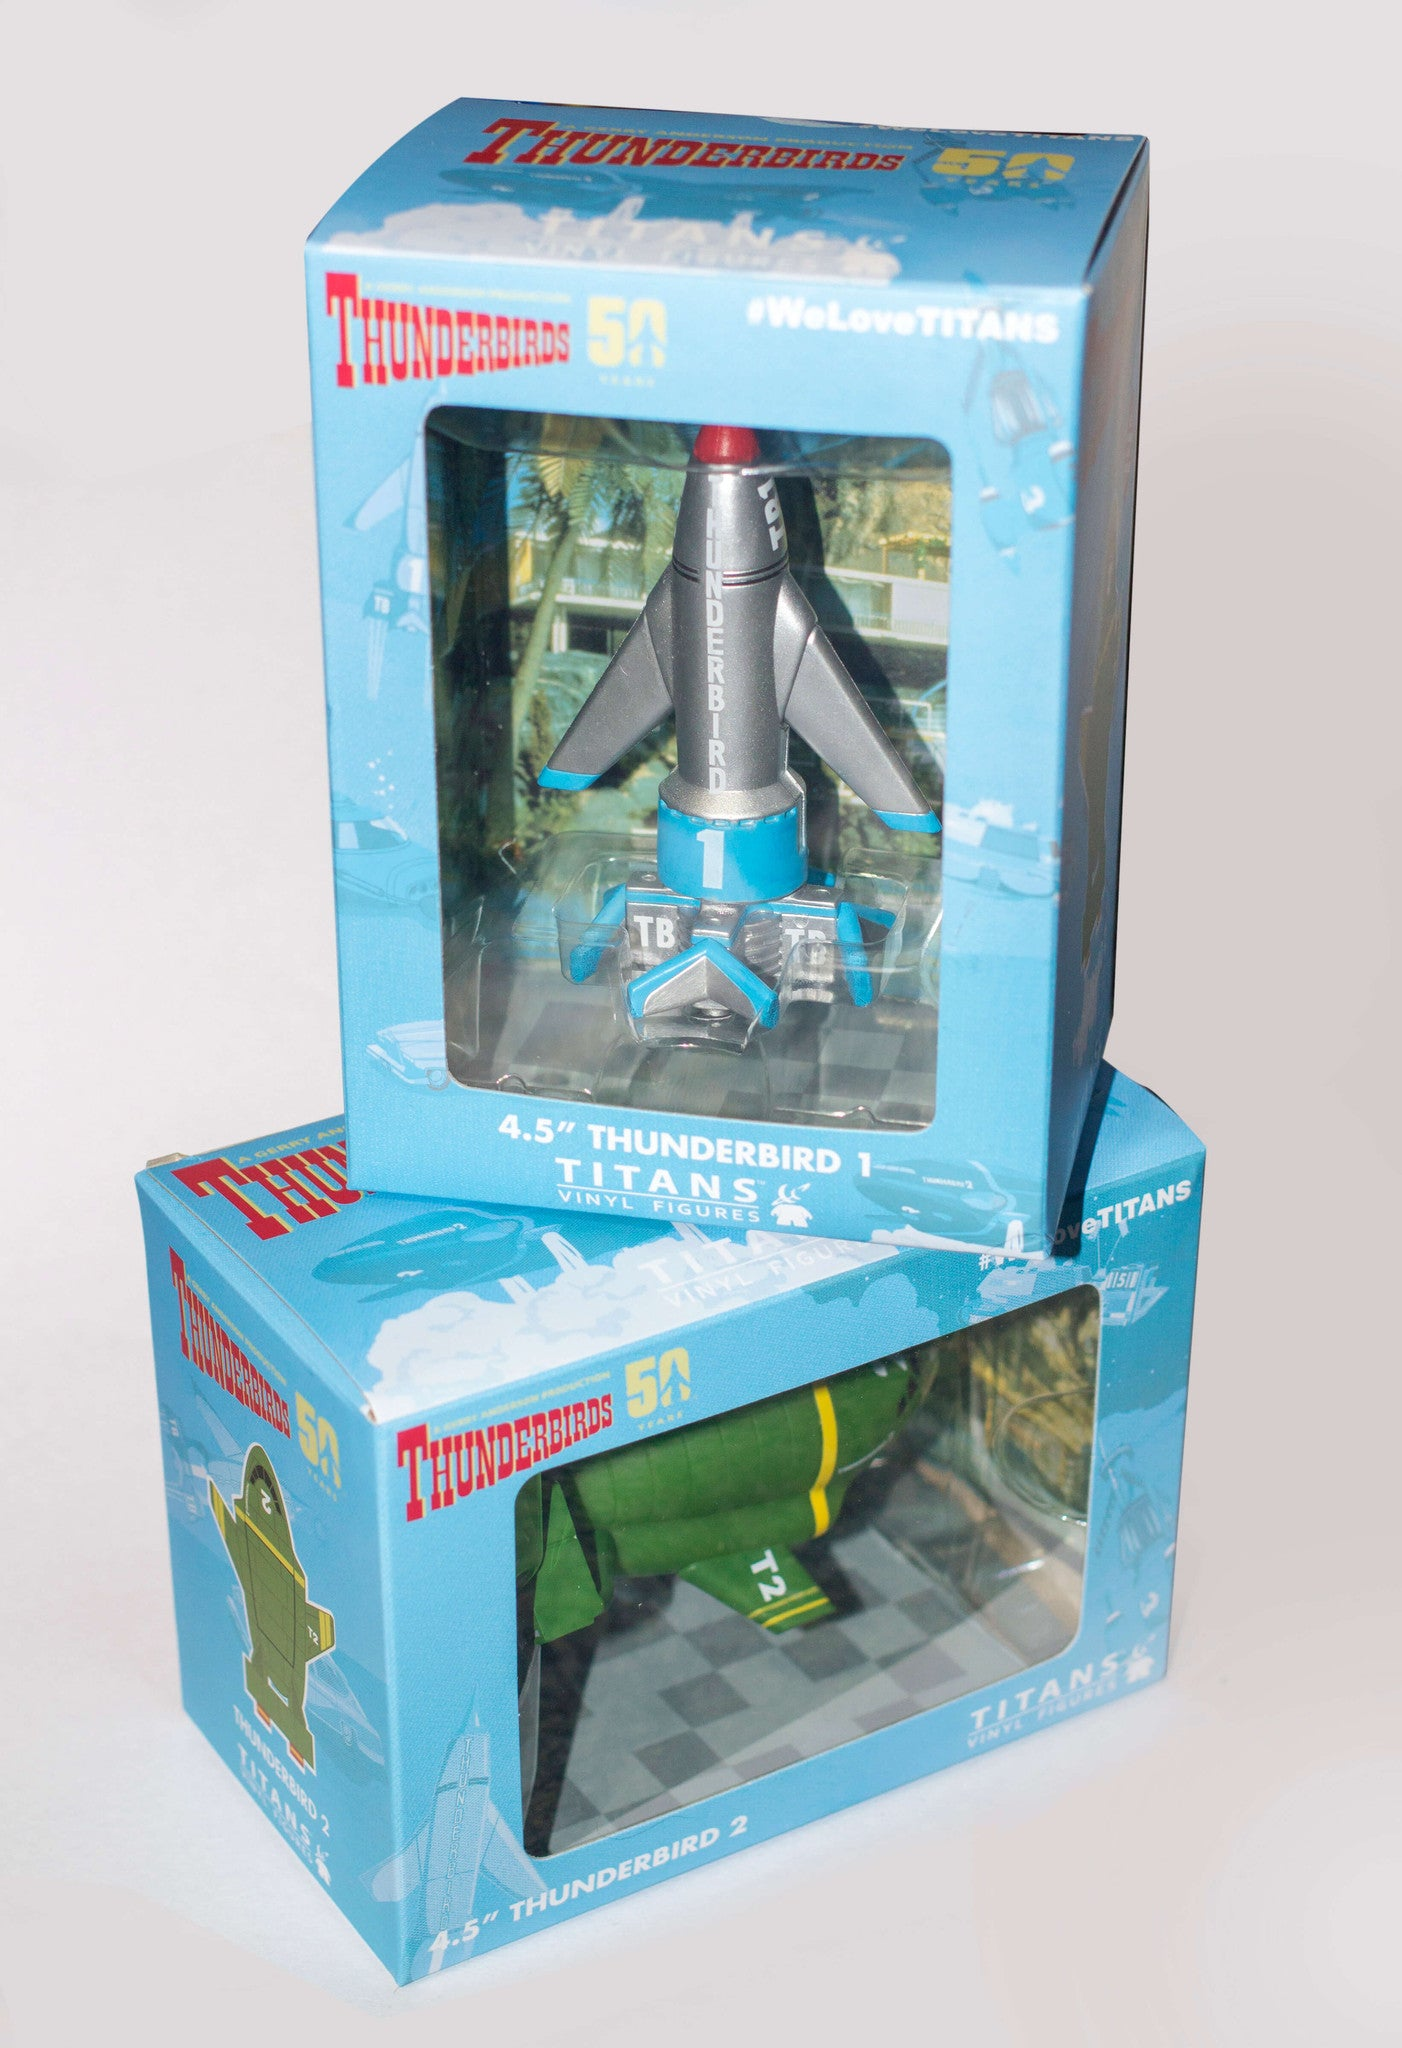 Thunderbird 1 and Thunderbird 2 Titans